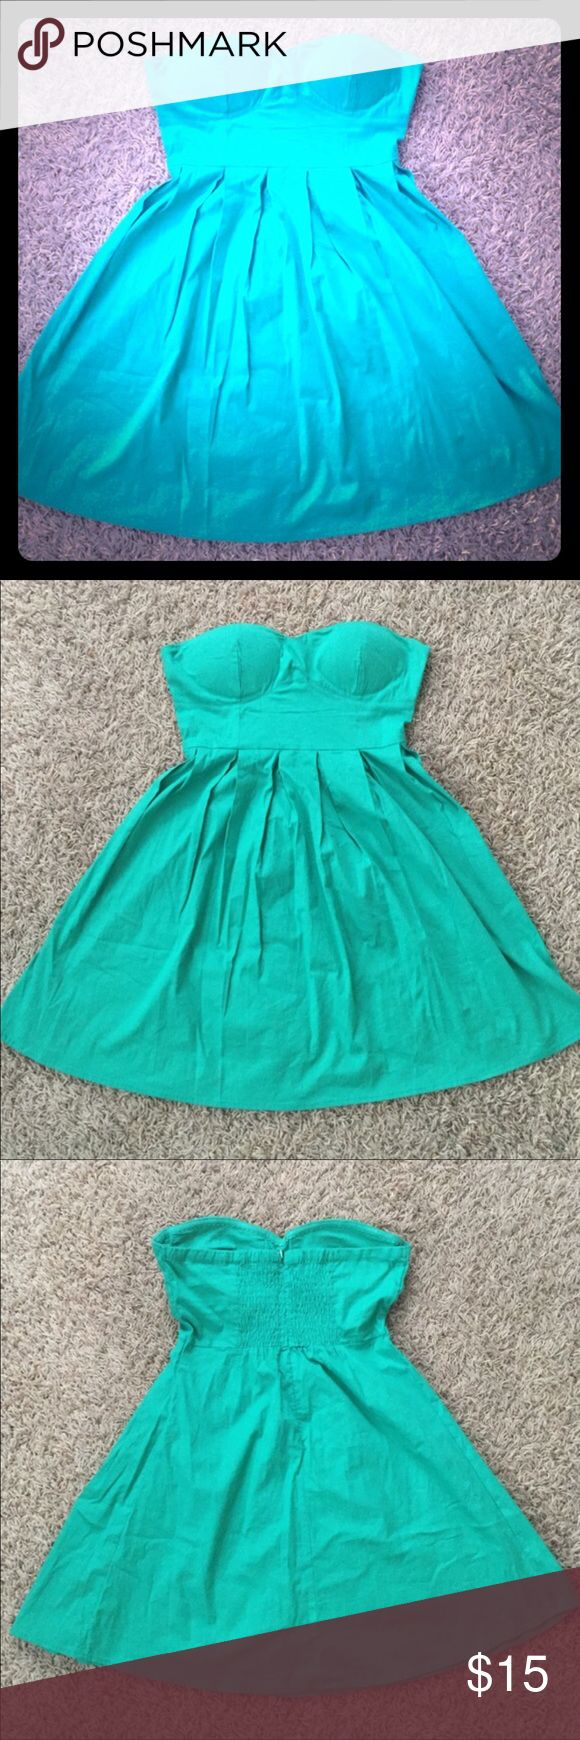 Body Central strapless sundress Super cute. Such a pretty green. Can be dressed up or worn casual. Built in cups for support. Never worn. Let me know if you have any questions. Only offers made with the offer button will be considered. Body Central Dresses Mini